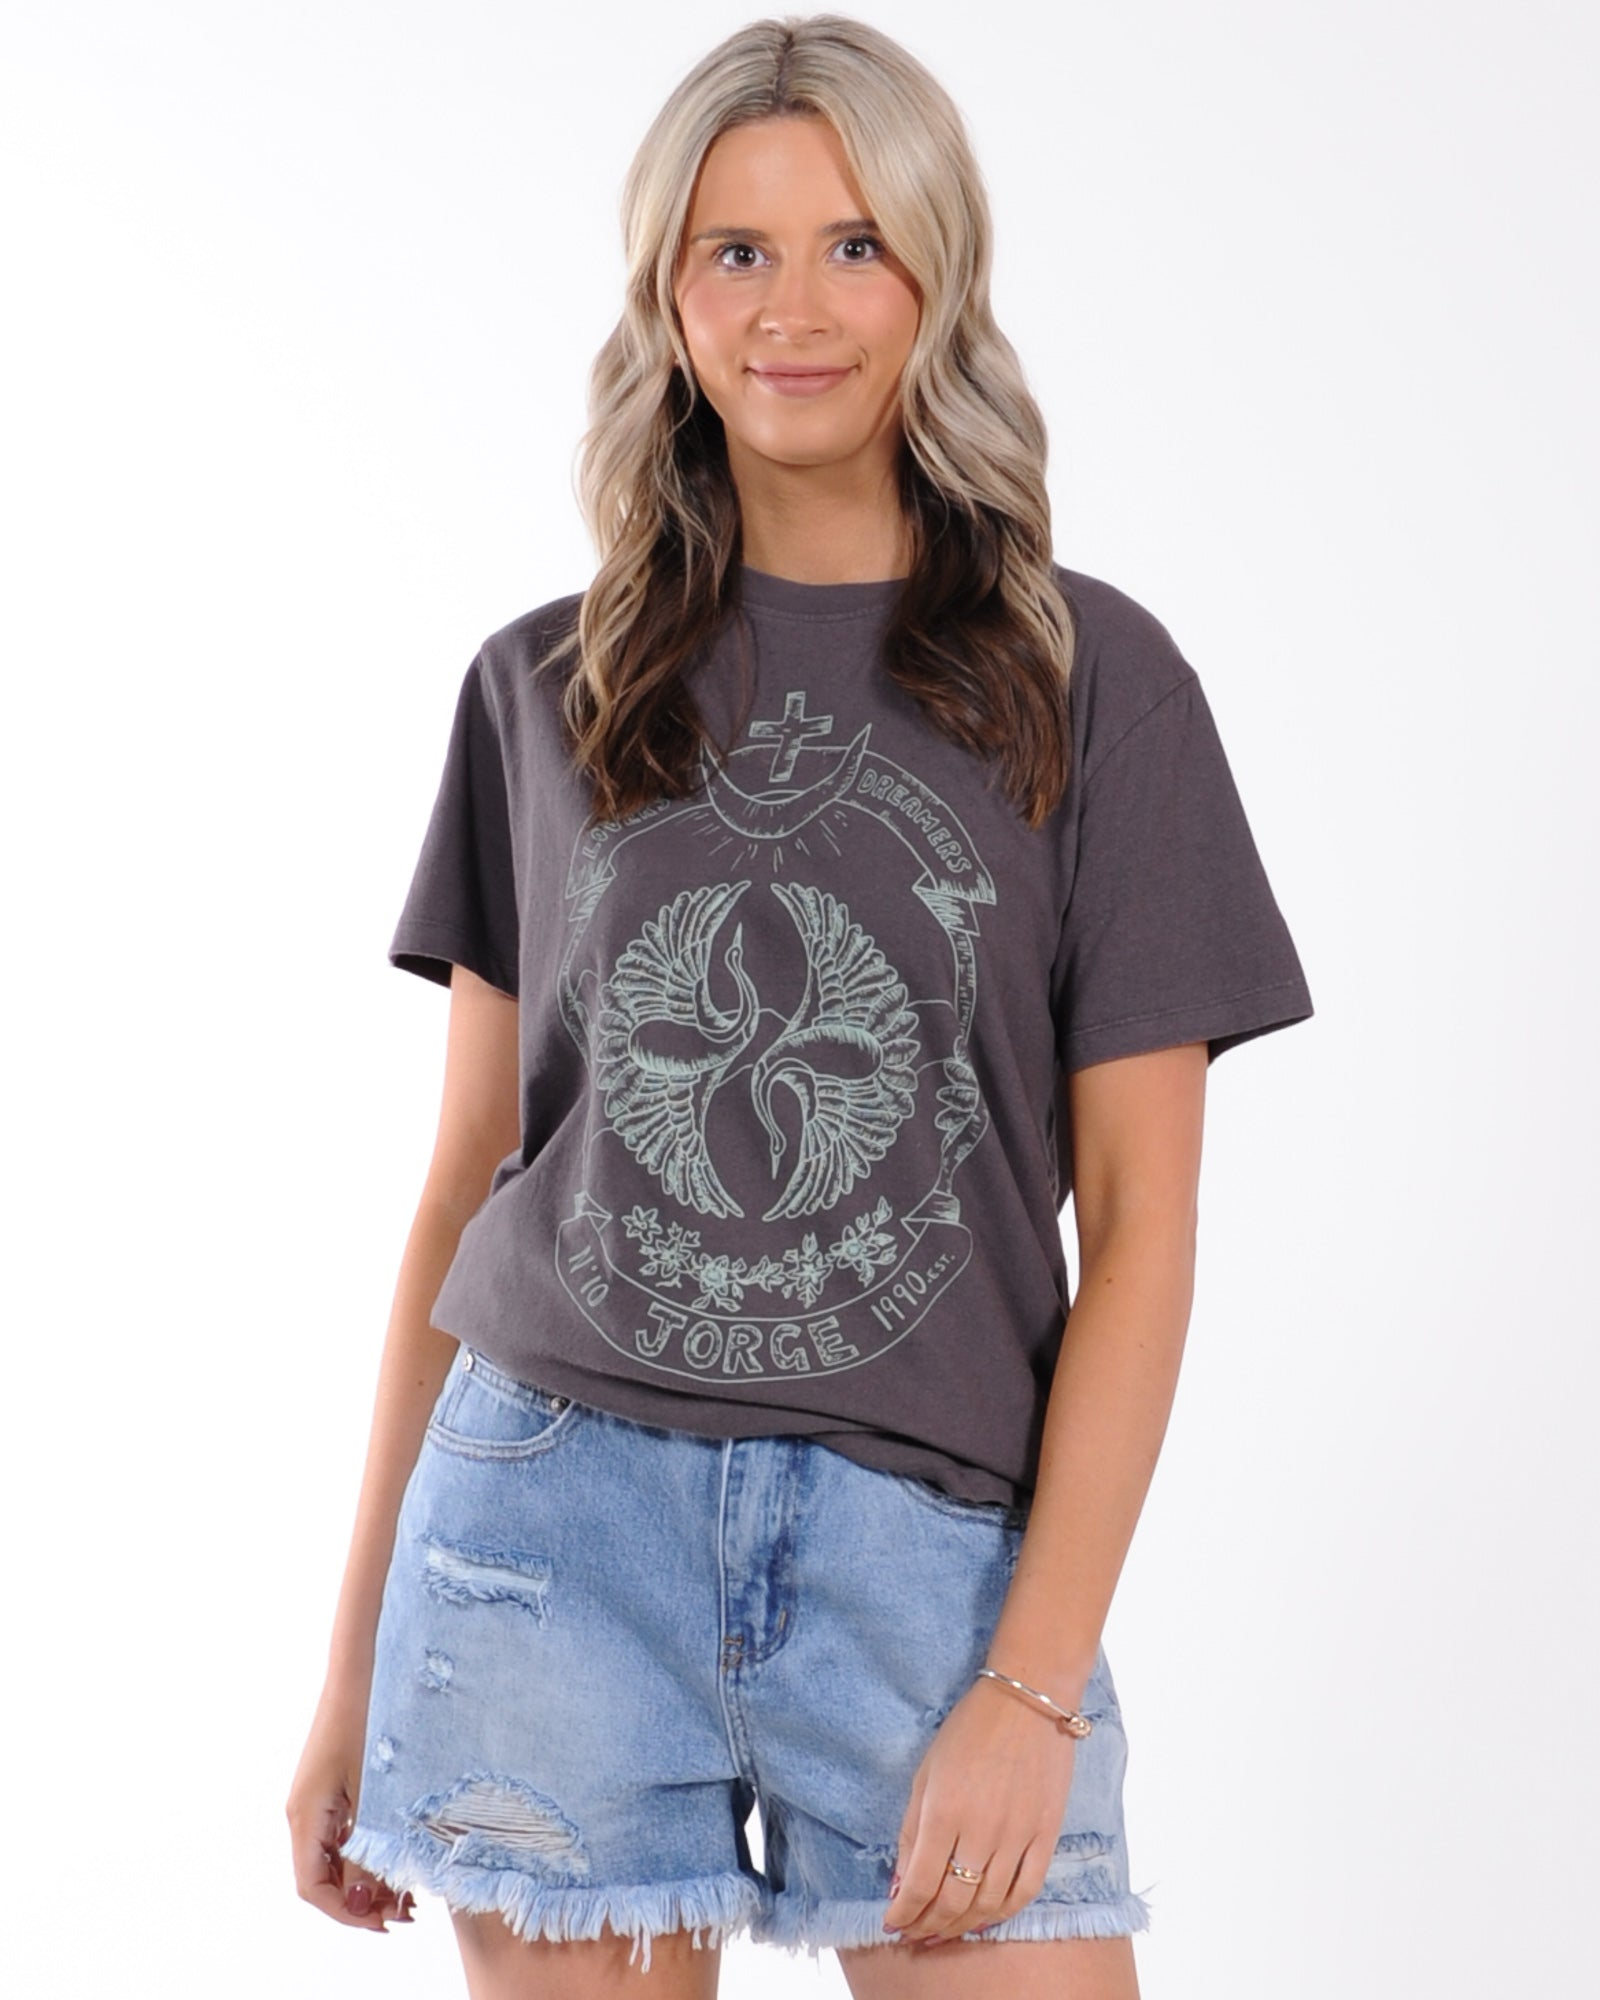 Jorge Songbird Tee - Washed Black